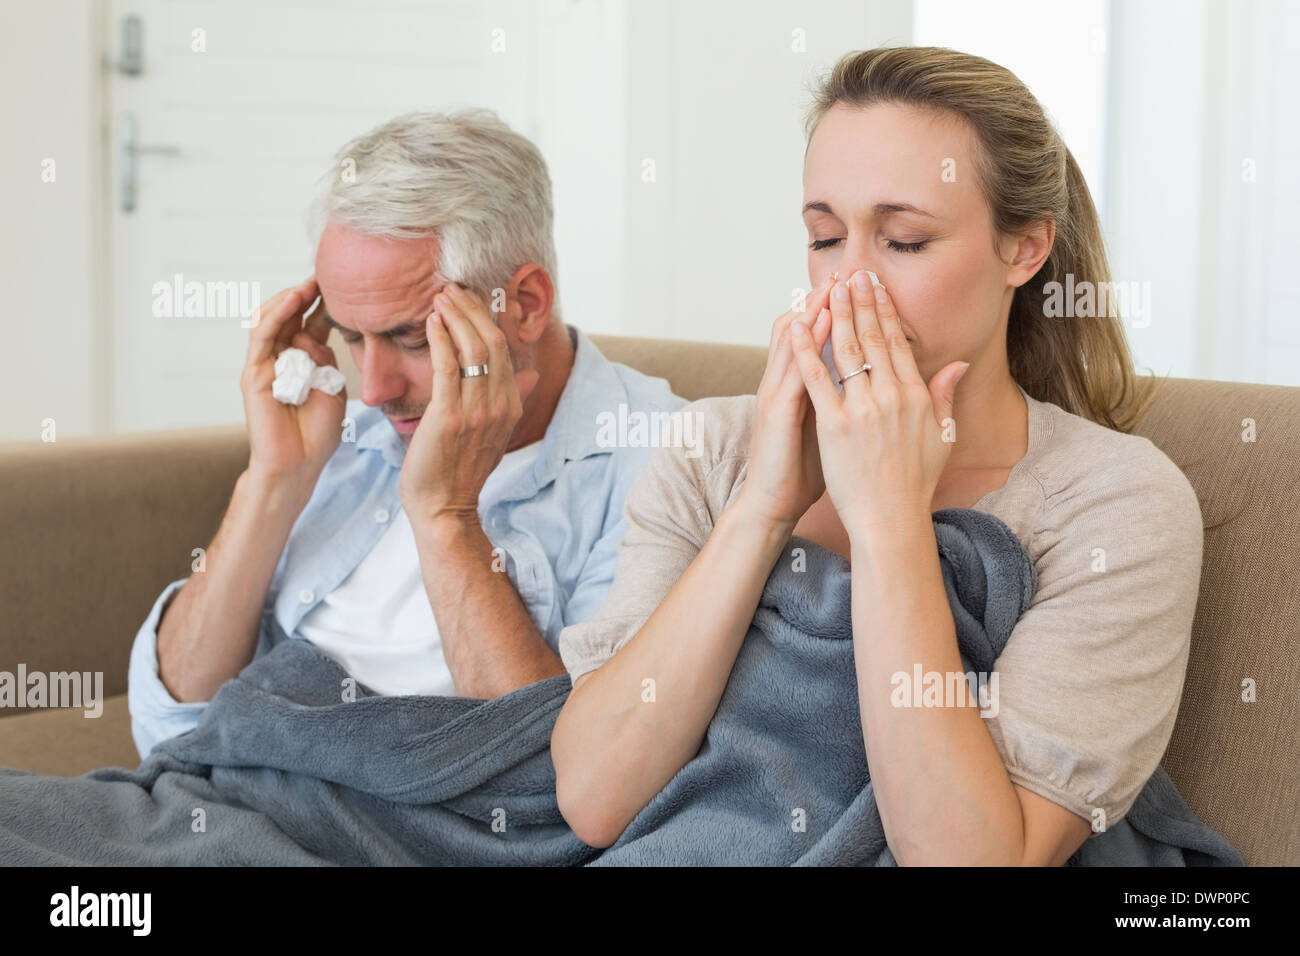 Sick couple sitting on the couch under a blanket - Stock Image